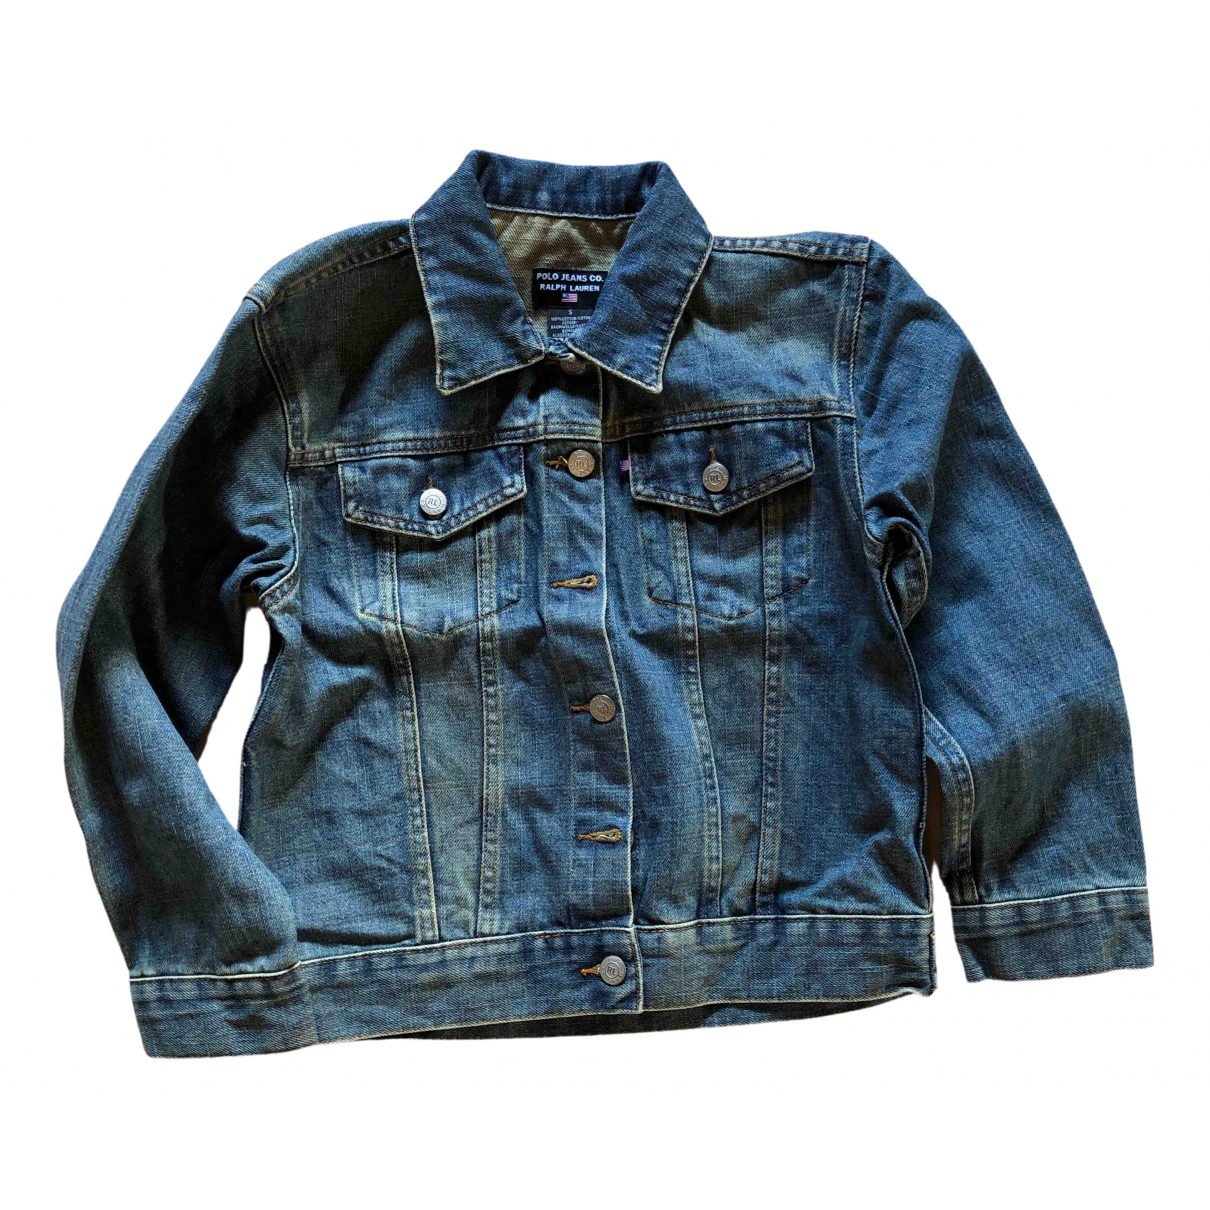 Polo Ralph Lauren \N Lederjacke in  Blau Denim - Jeans